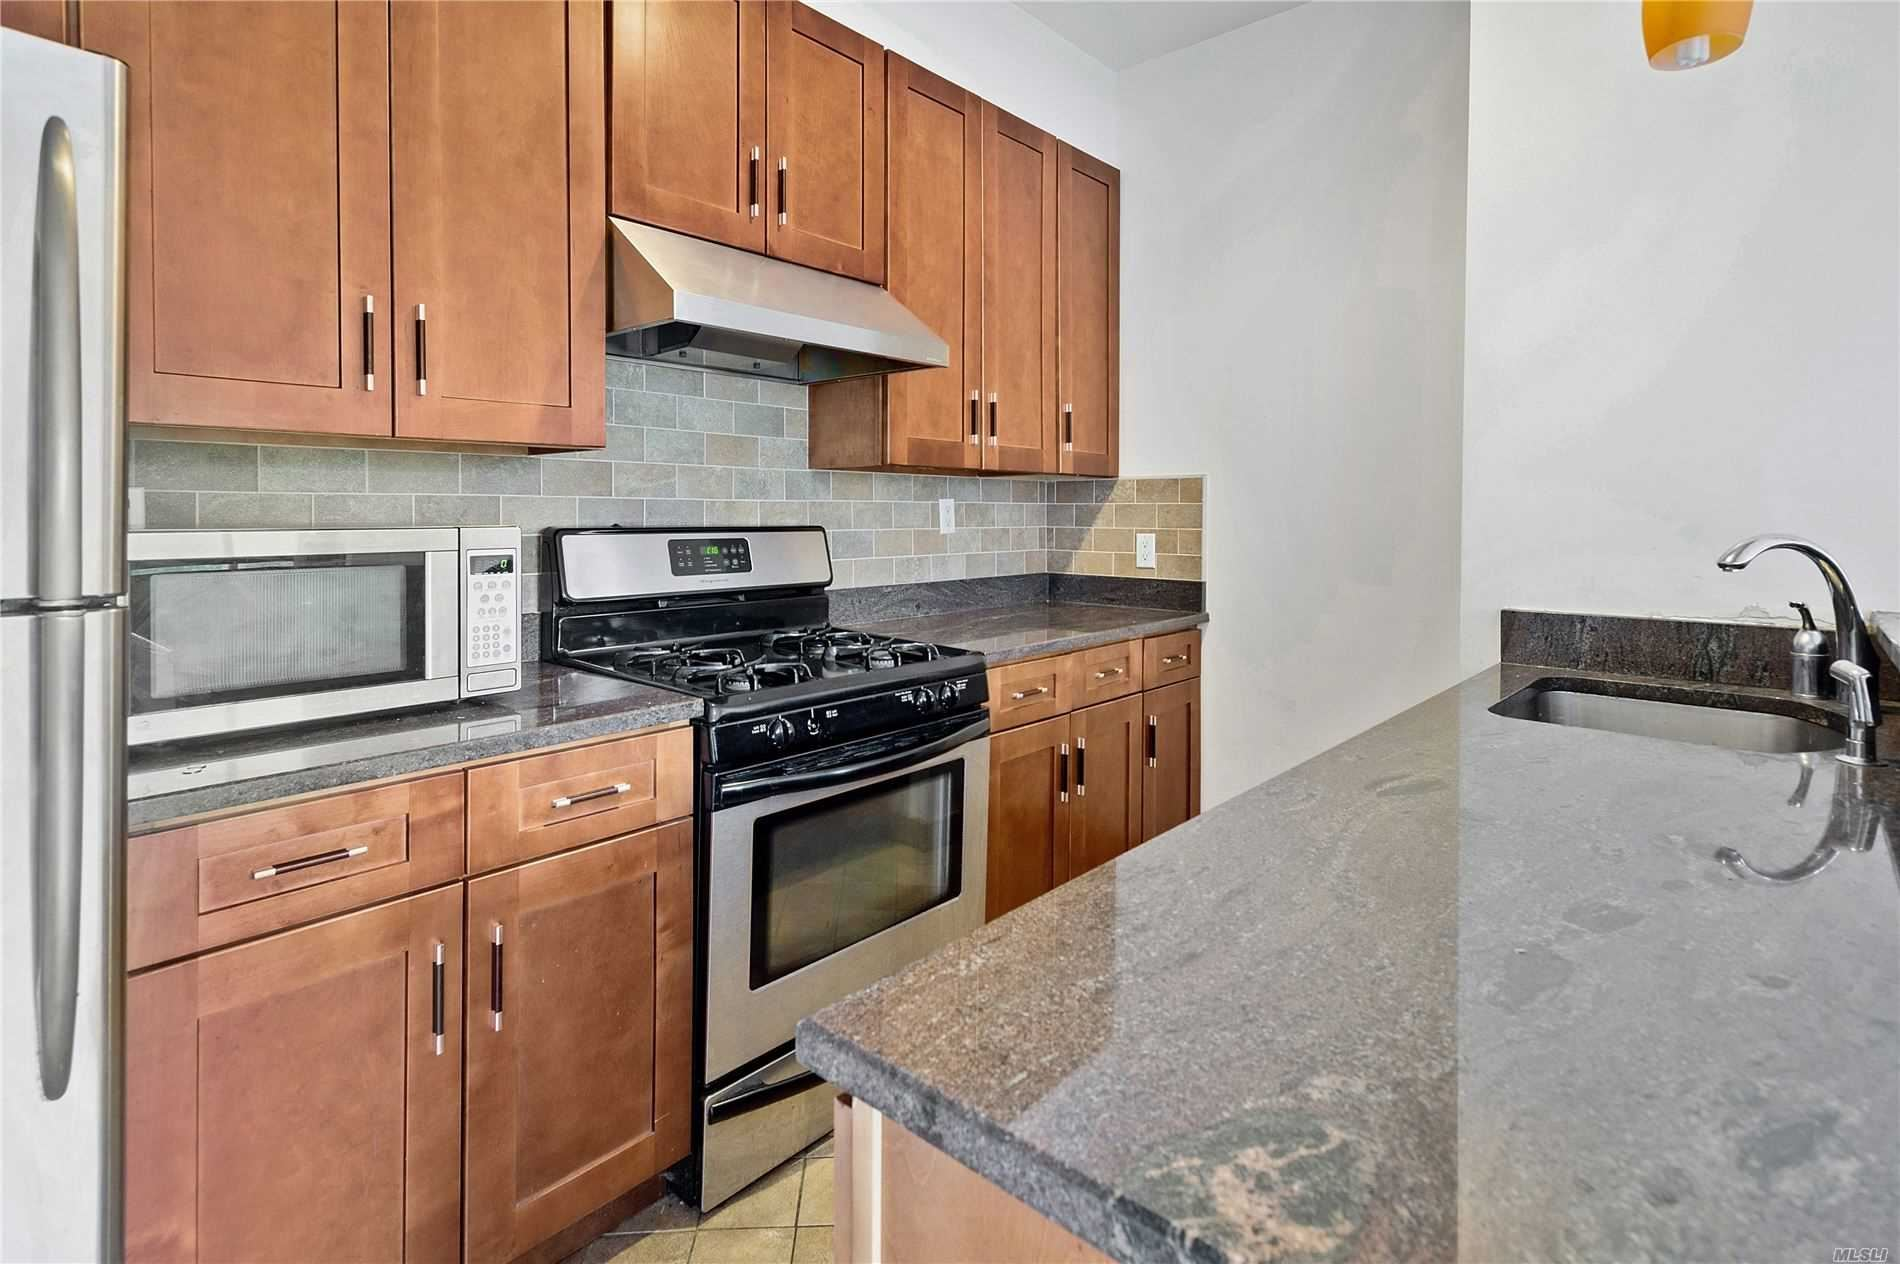 116 Conselyea Street #2A, Williamsburg, NY 11211 - MLS#: 3233278